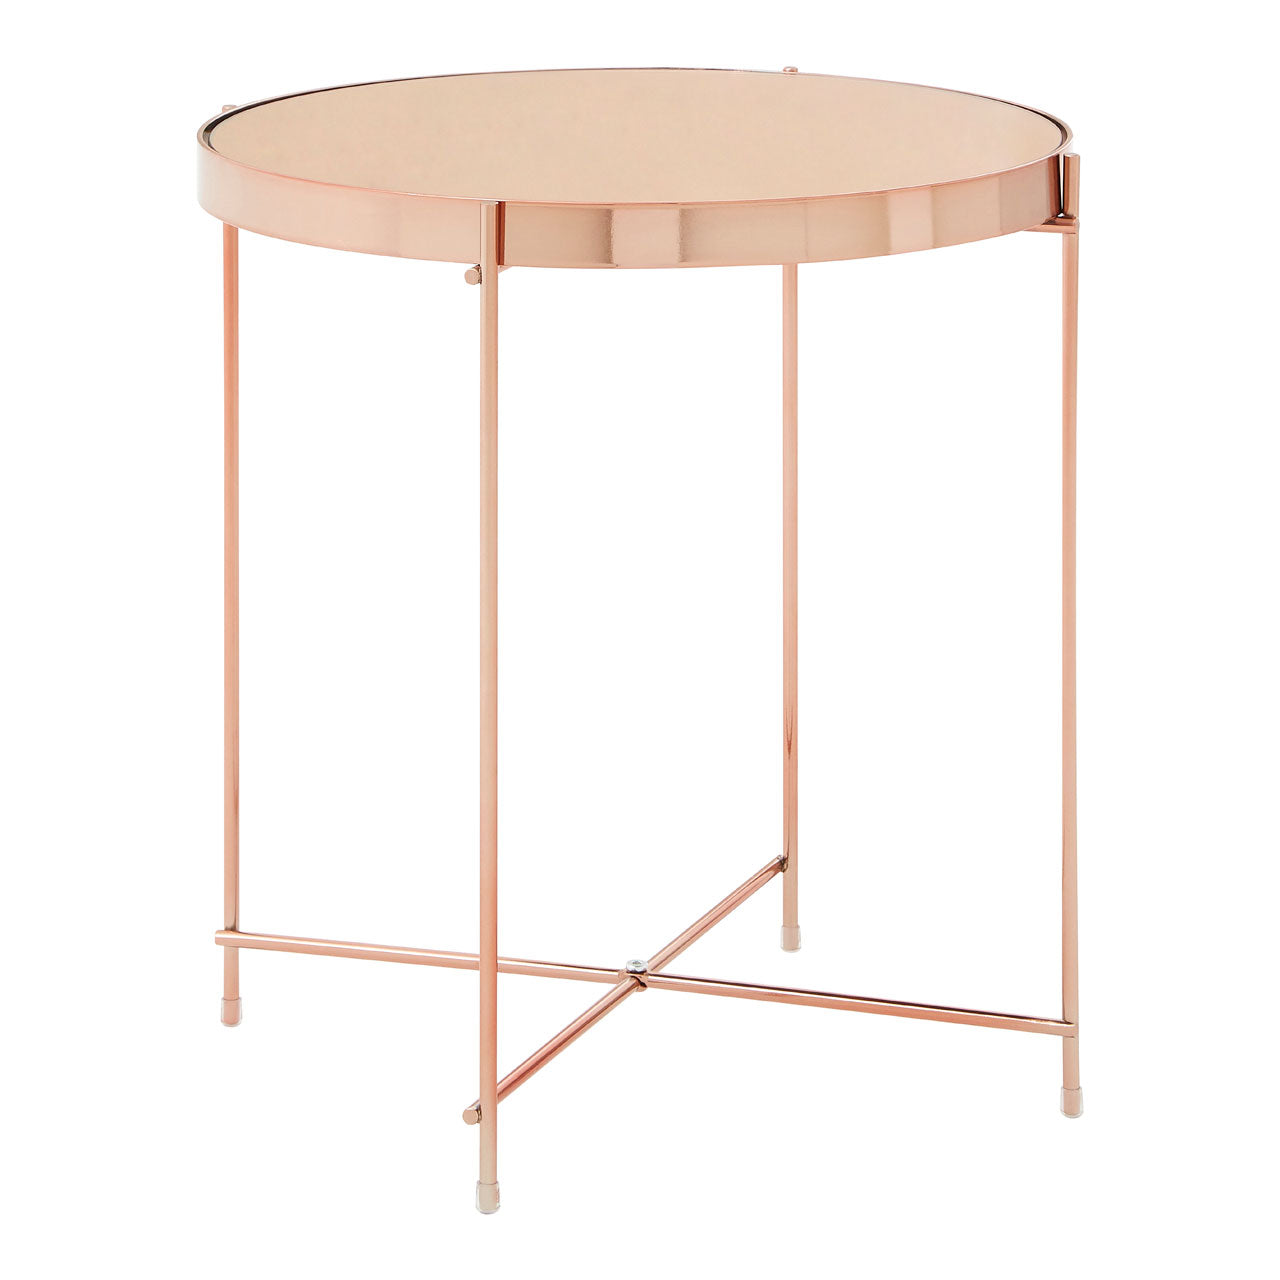 Allure Round Side Table Rose Gold - Ezzo